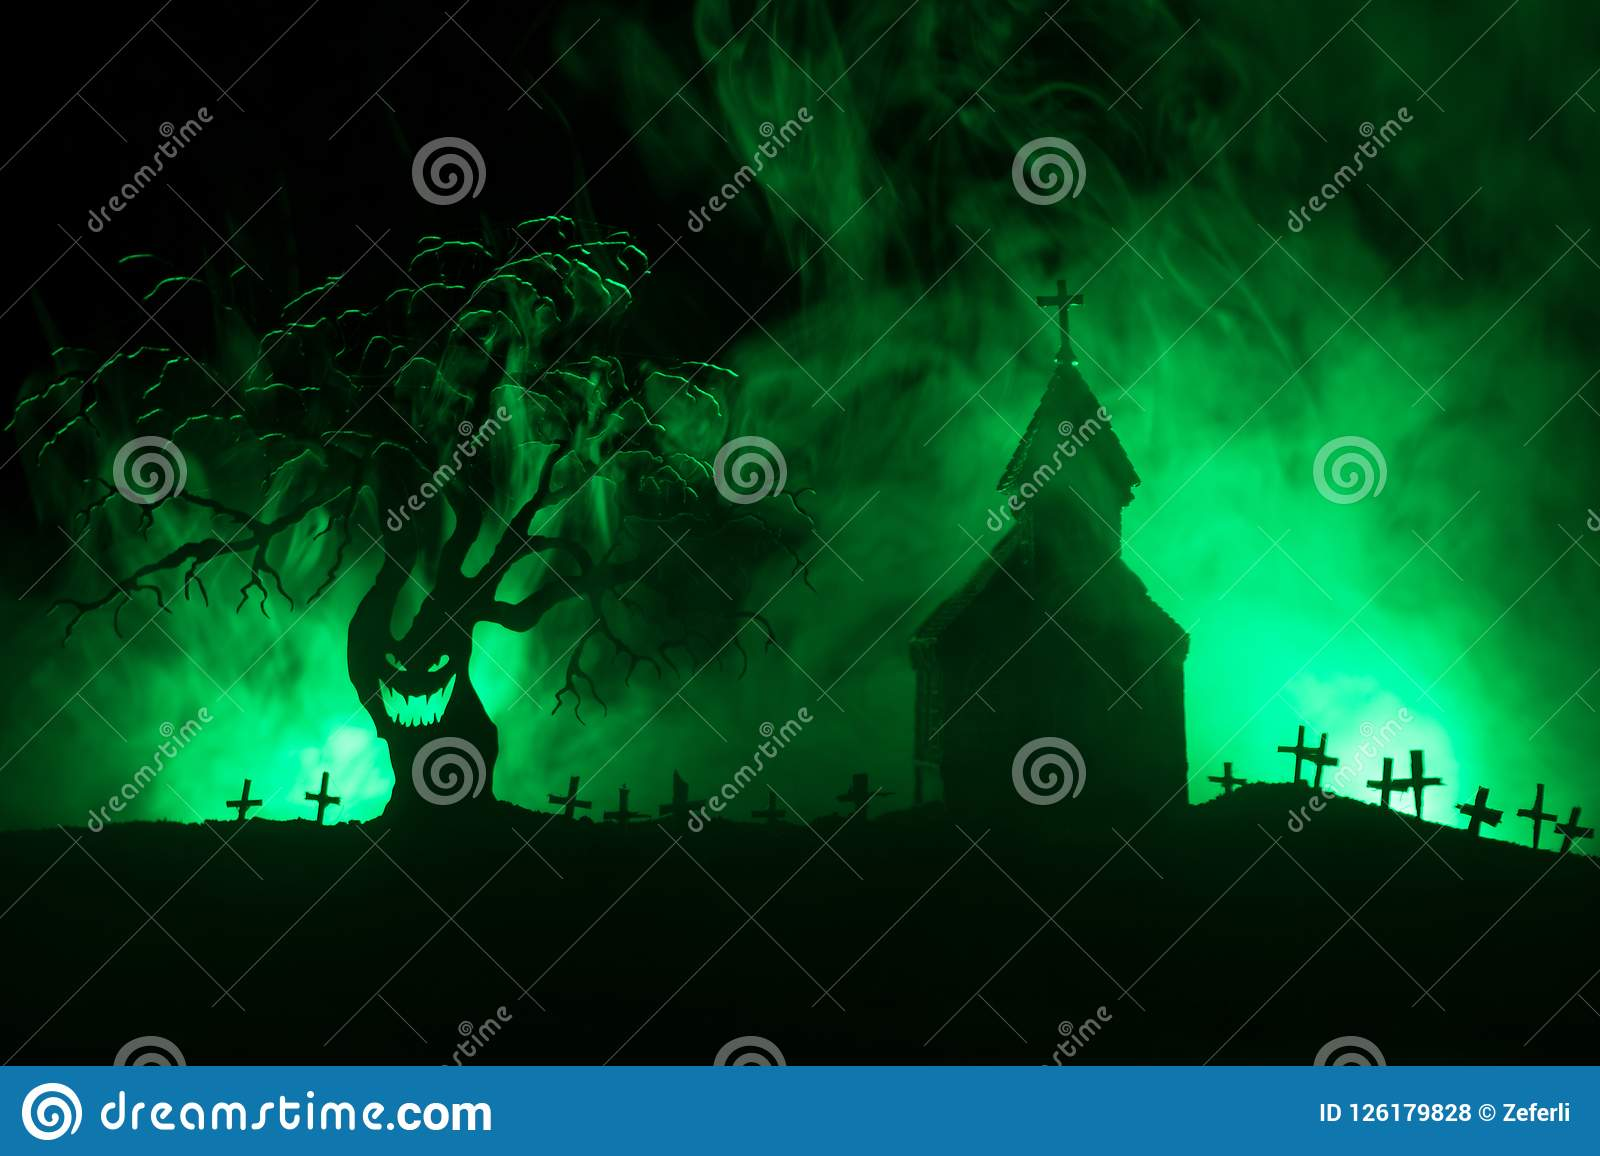 Scary View Of Zombies At Cemetery Dead Tree, Moon, Church